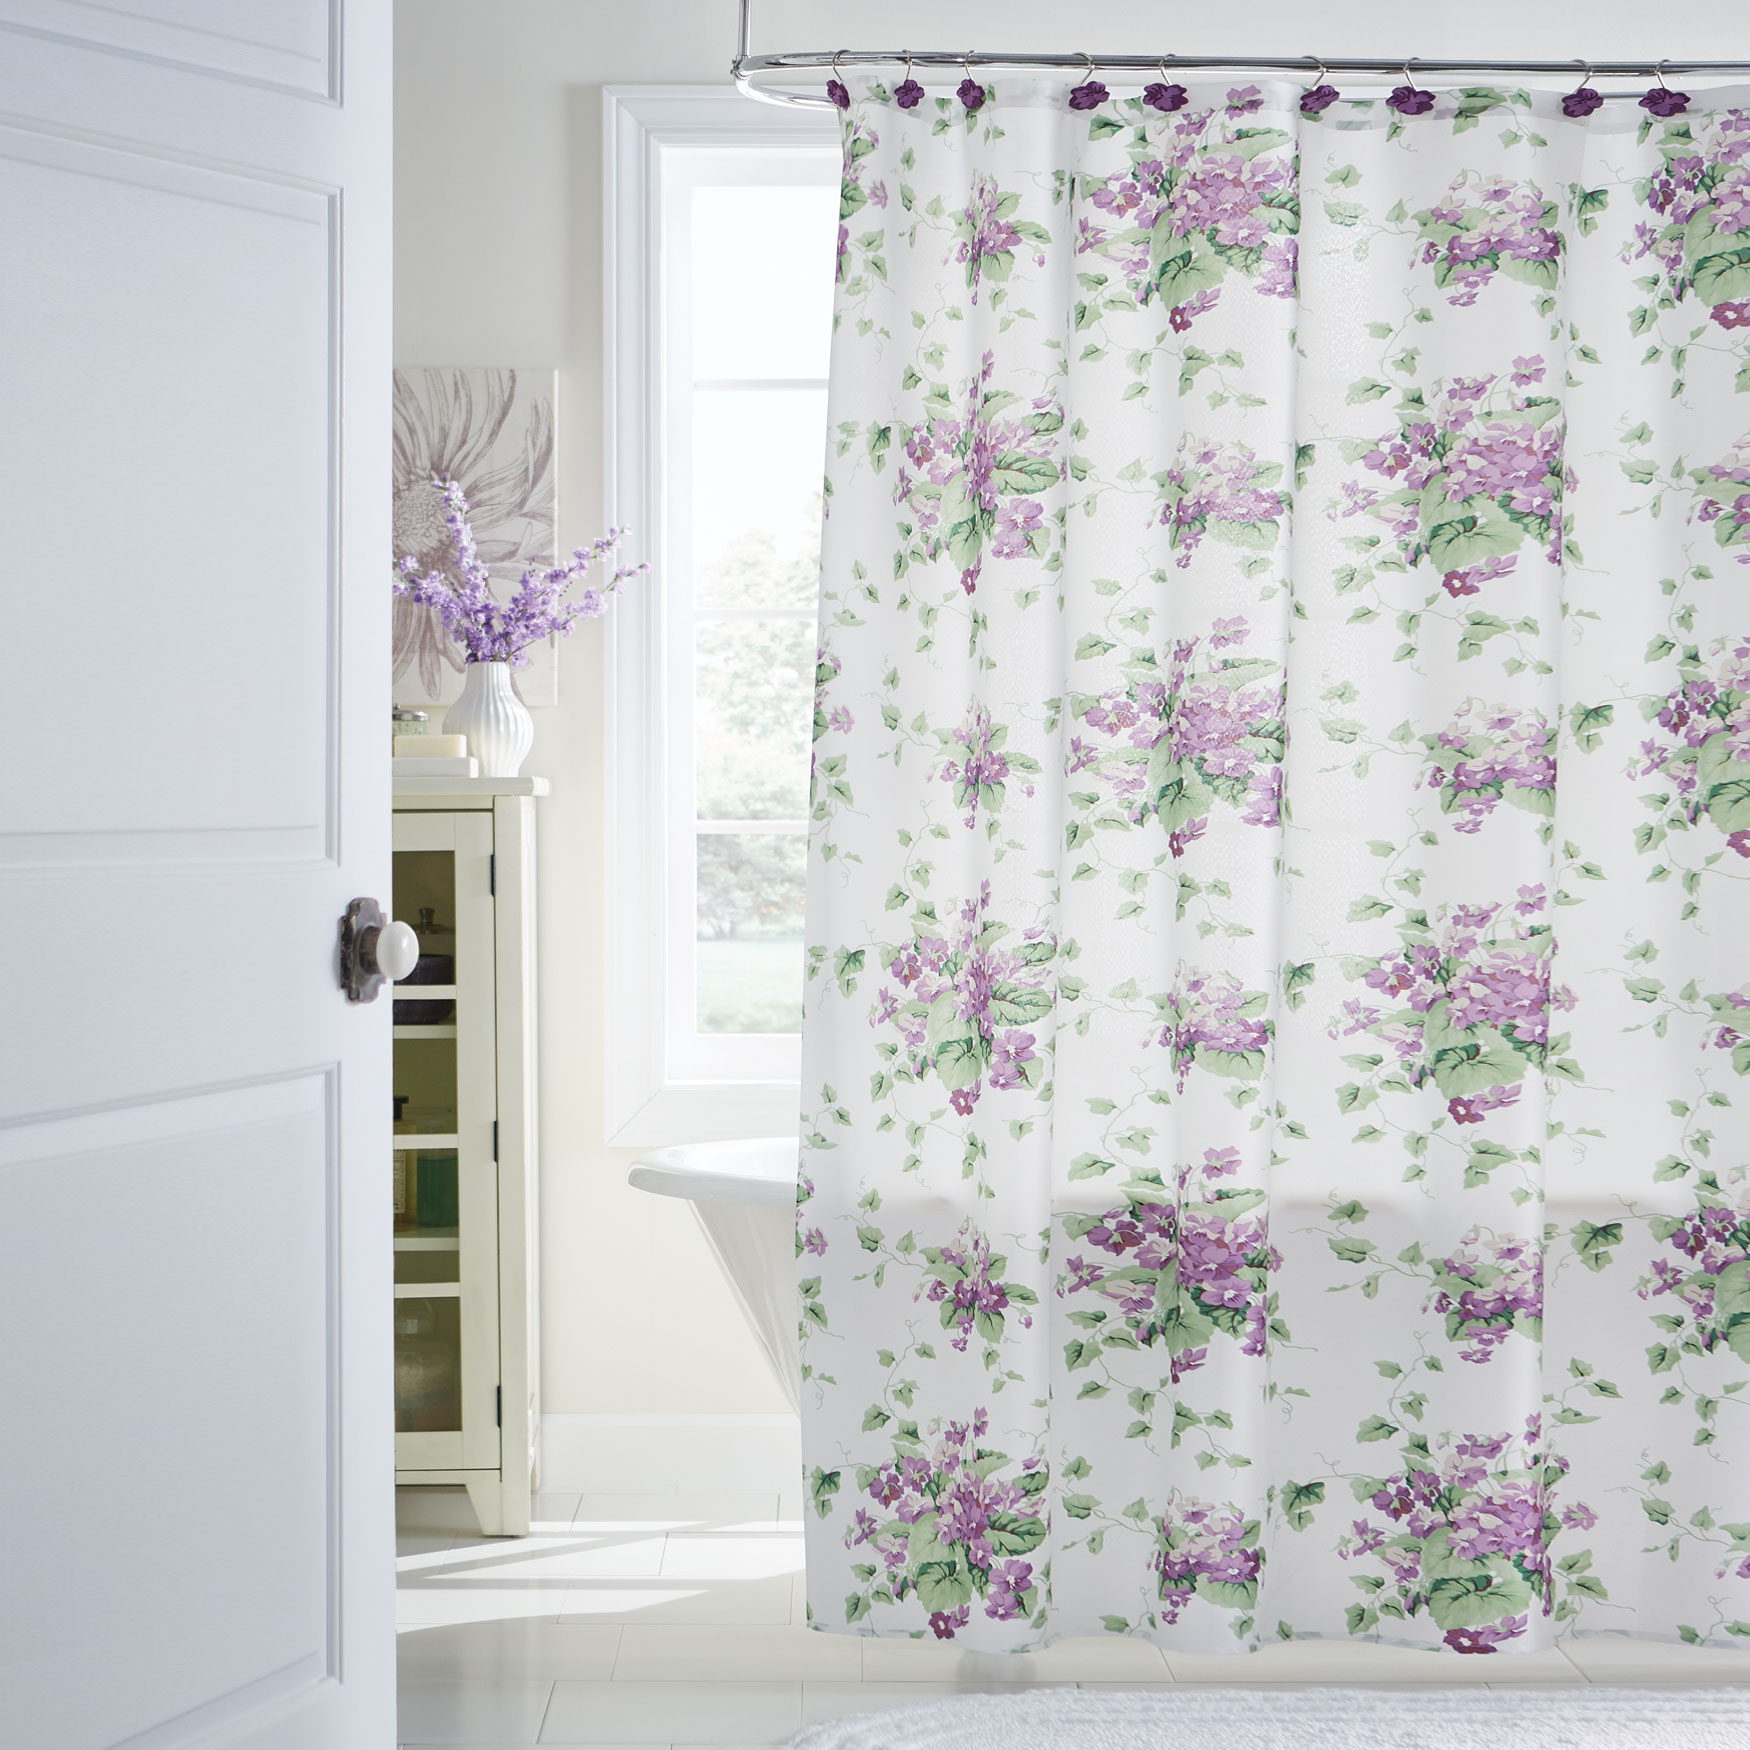 13-Pc. Waverly Floral Shower Curtain Set, SWEET VIOLET